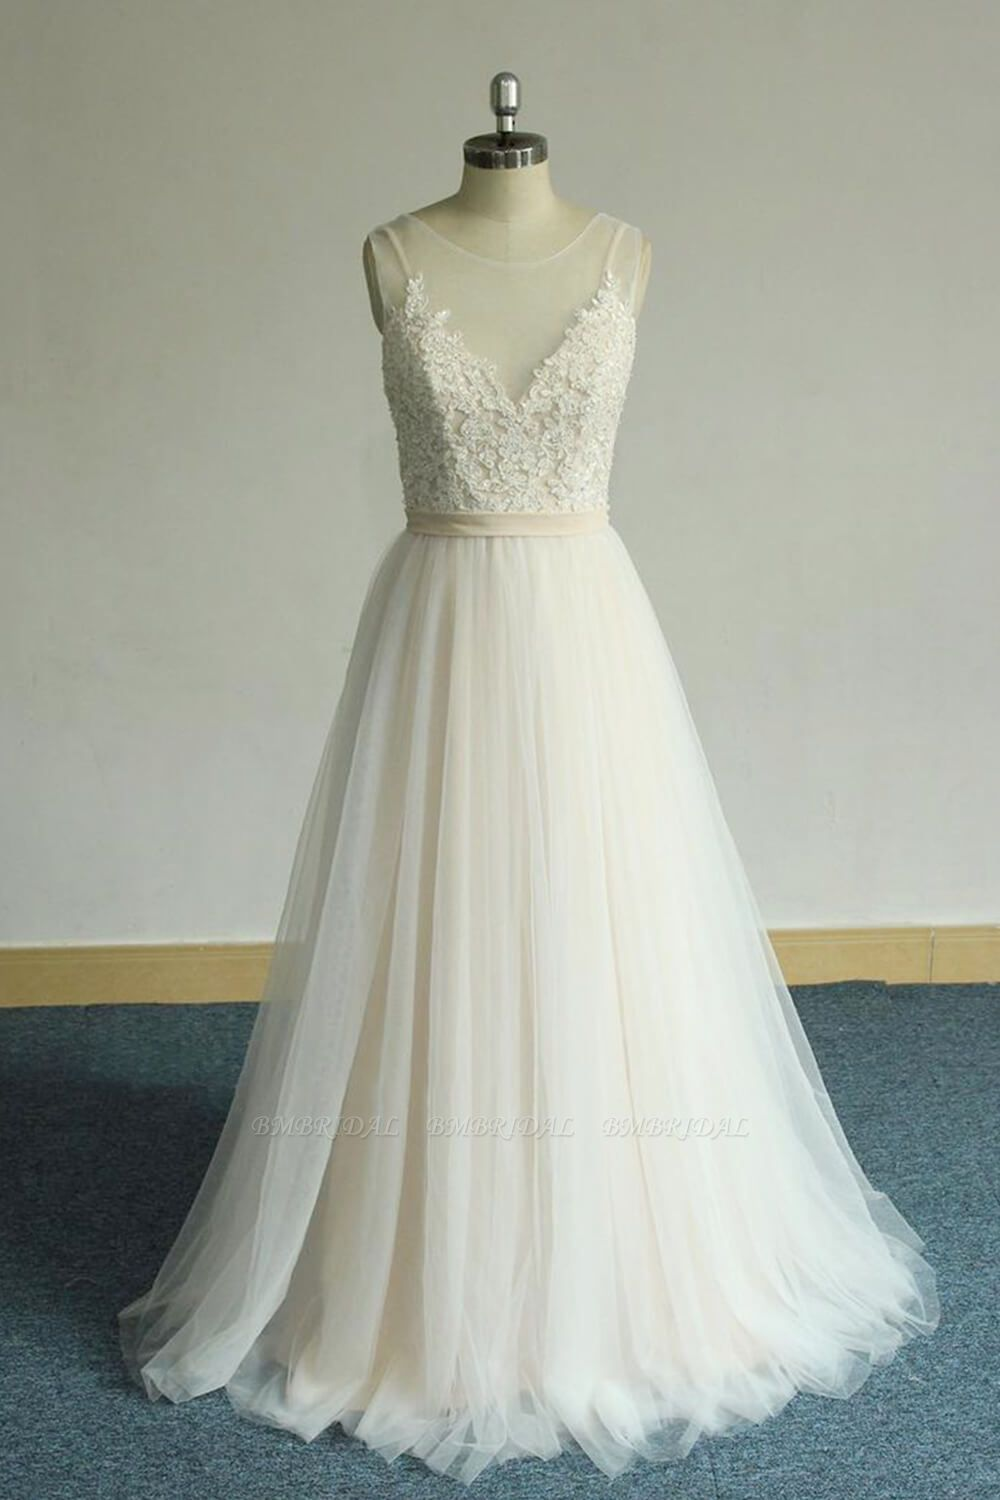 BMbridal Chic Straps Sleeveless Appliques Wedding Dress A-line Tulle White Bridal Gowns On Sale